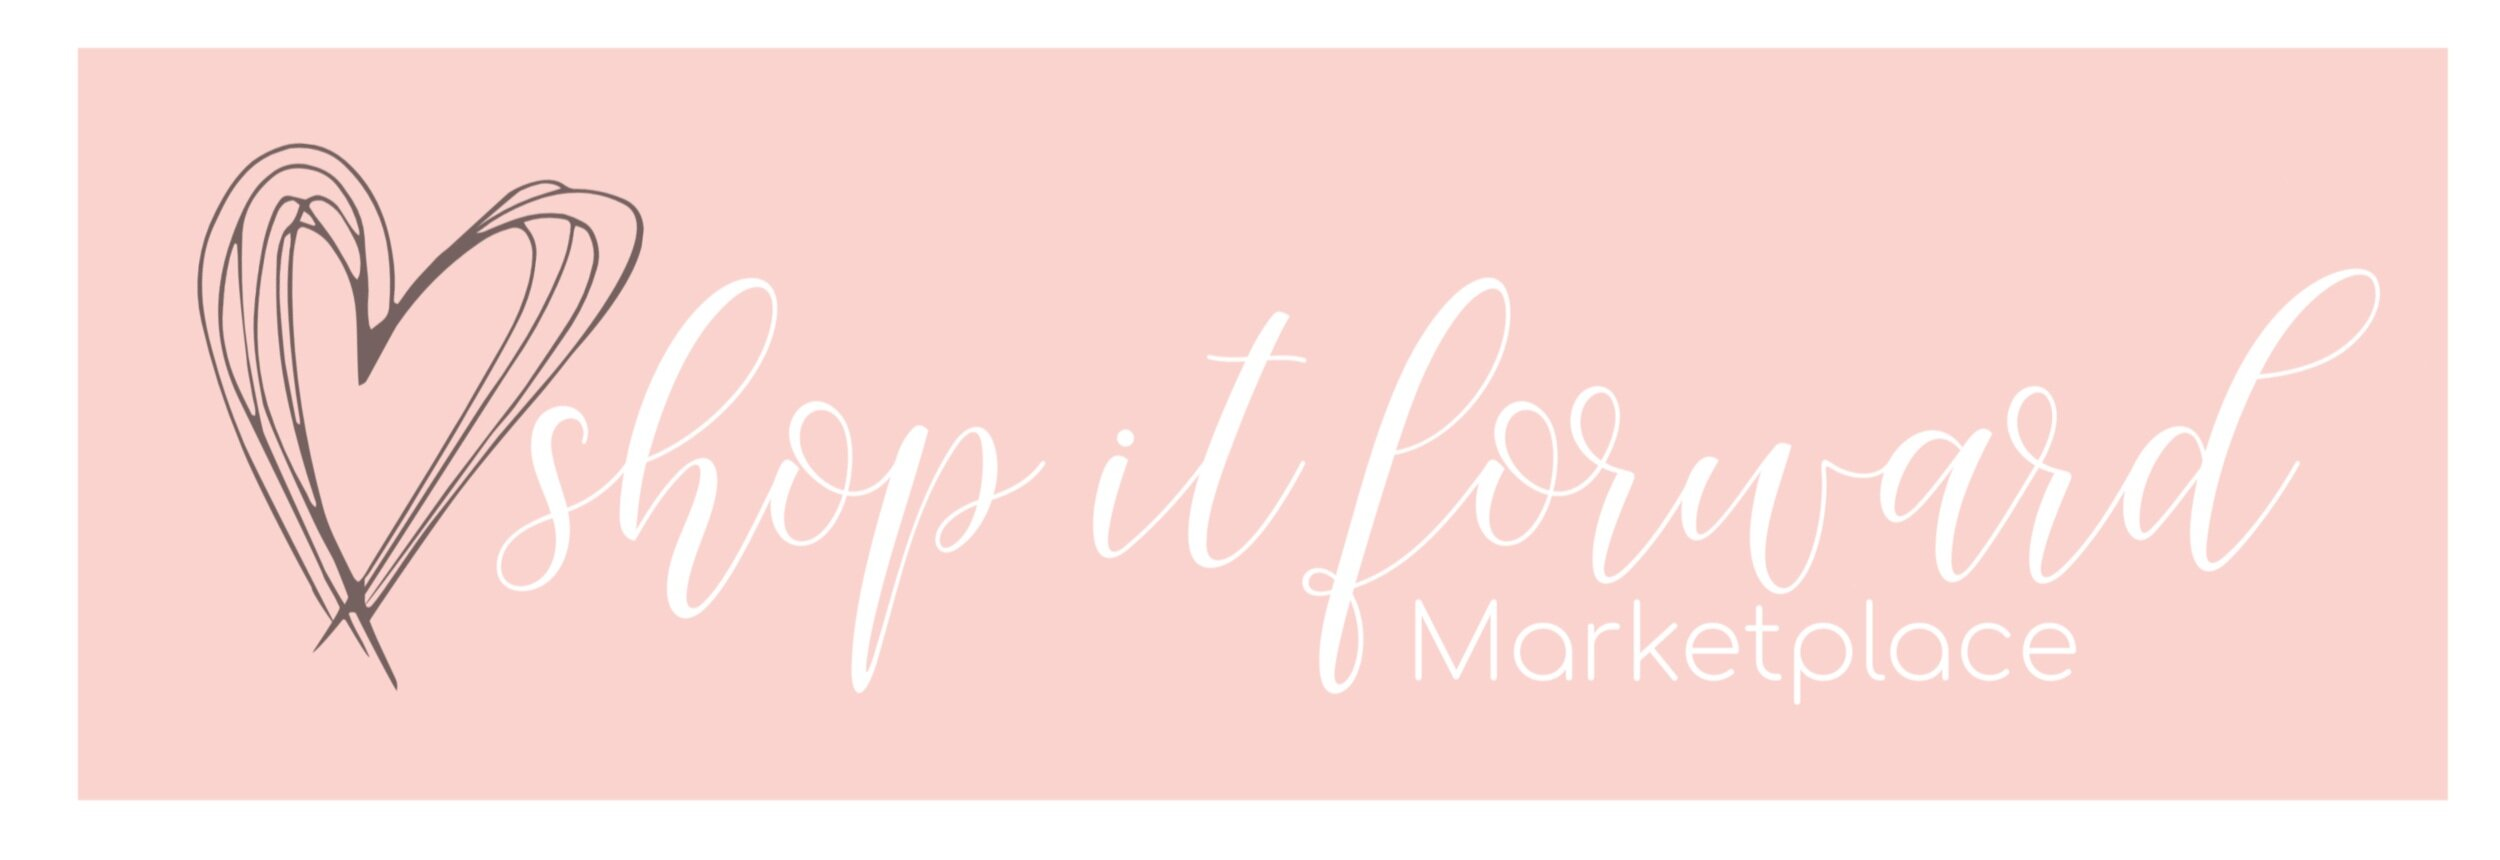 Organized and powered by Shop it Forward Marketplace